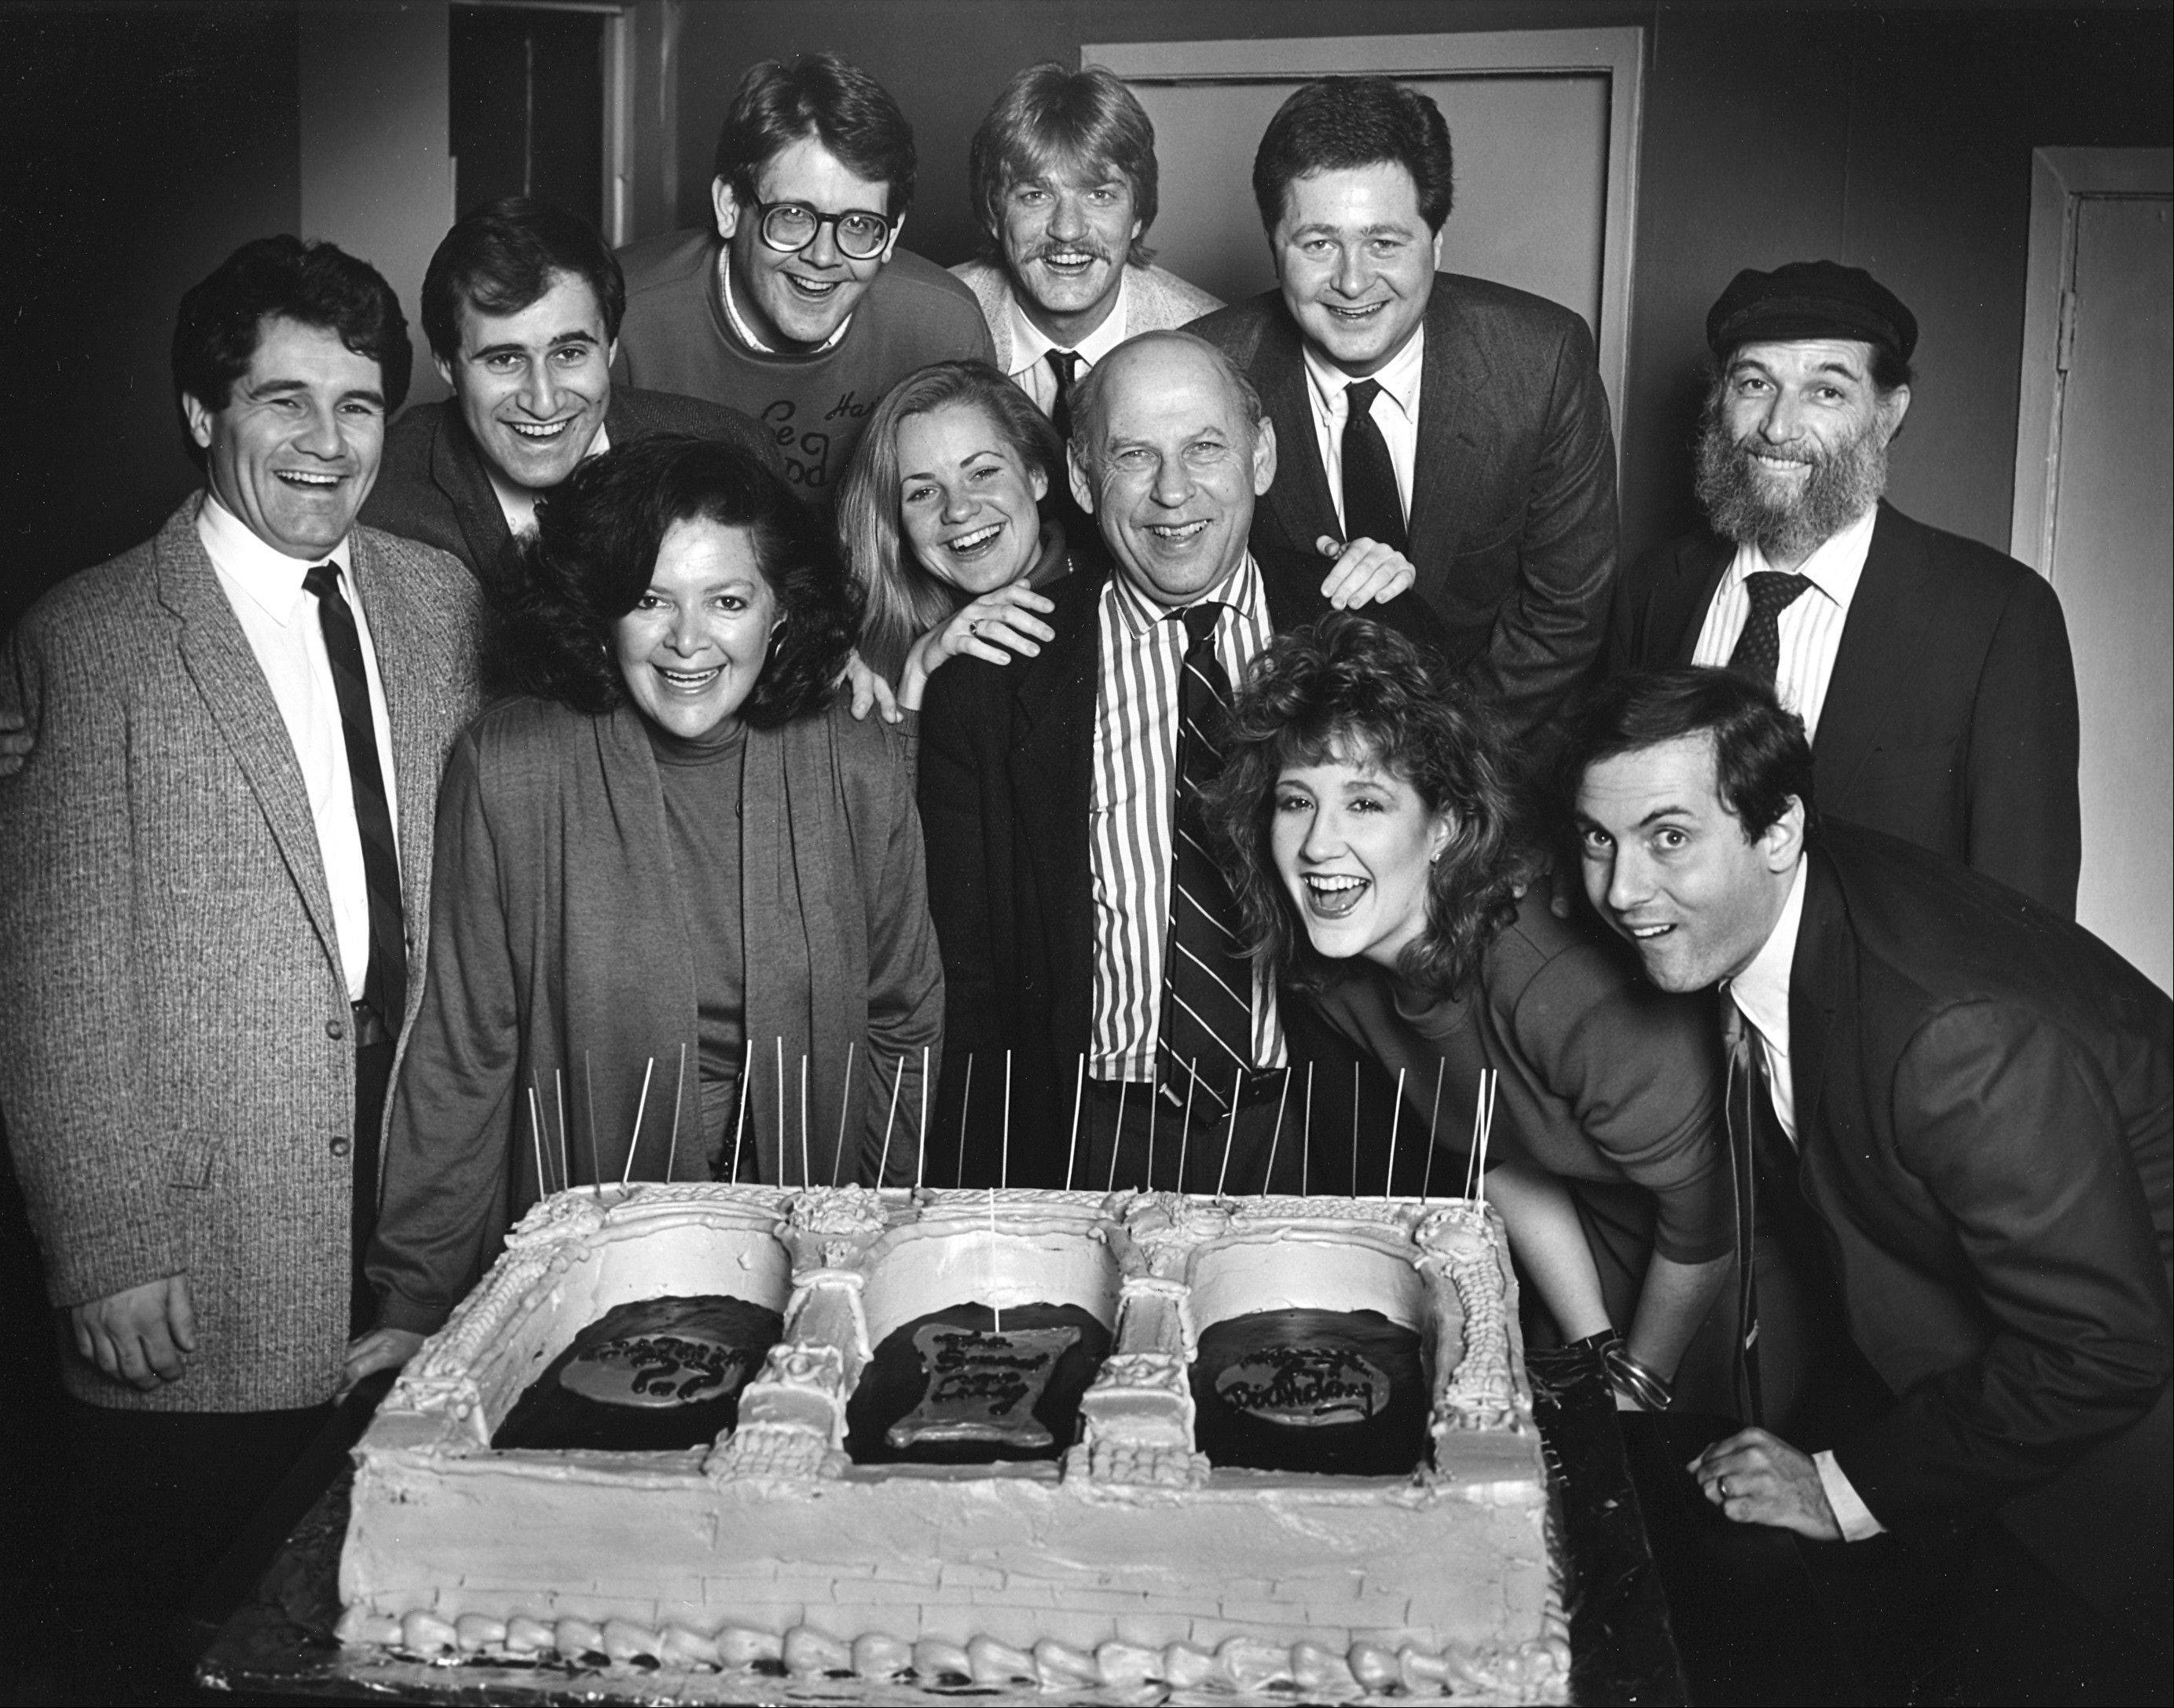 Bernard Sahlins, co-founder of The Second City, poses with actors during an opening night party in Chicago. Sahlins, who nurtured the early careers of many of the earliest stars of �Saturday Night Live,� died Sunday at the age of 90. In the back row are: Rick Hall, Richard Kind, Harry Murphy, Craig Taylor, Jim Fay and Fred Kaz. In the front row are: Joyce Sloane, Bonnie Hunt, Sahlins, Maureen Kelly and Dan Castellaneta.